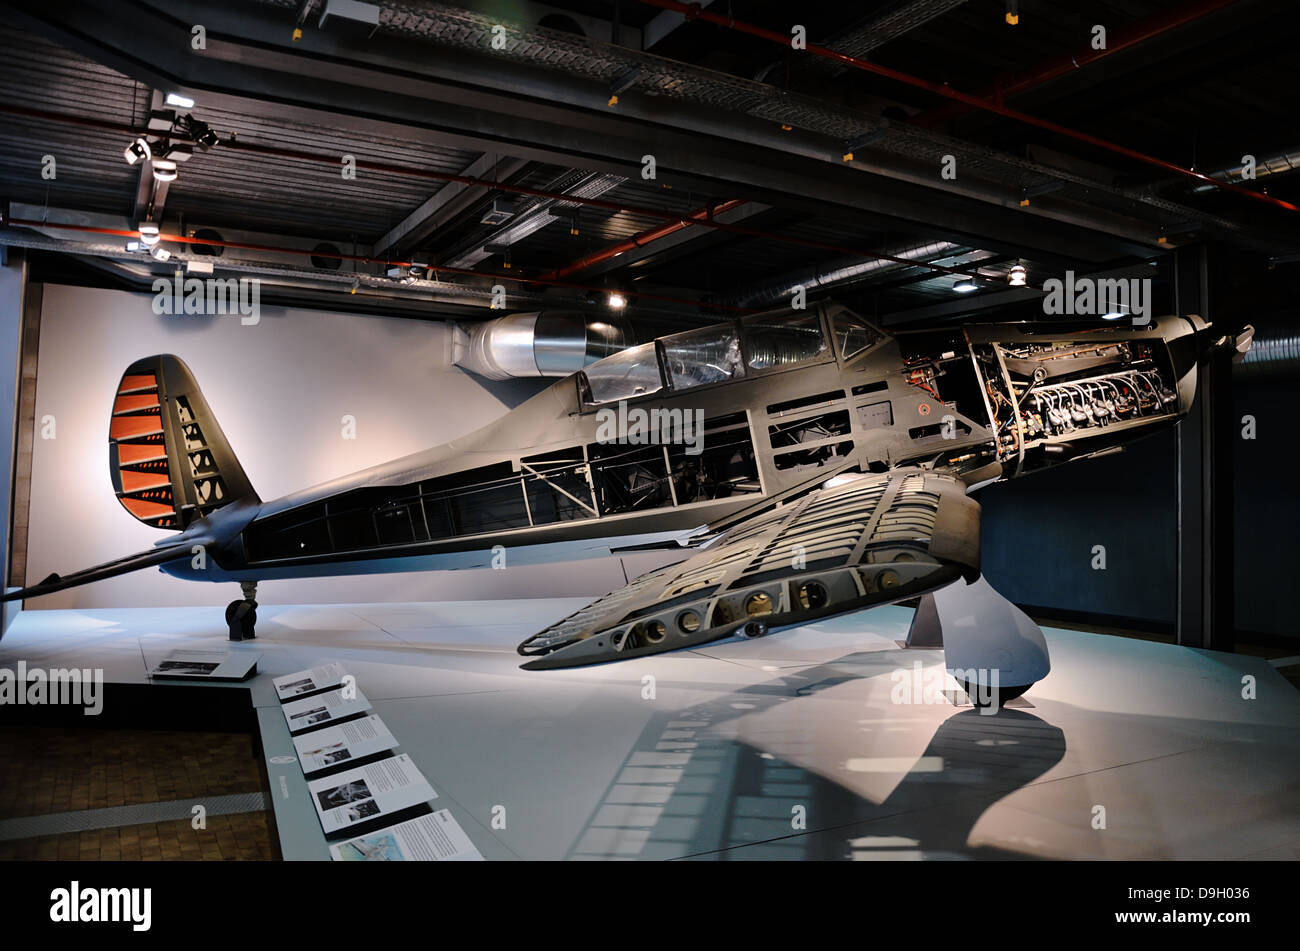 Deutsches Technik Museum. Berlin, Germany - Stock Image